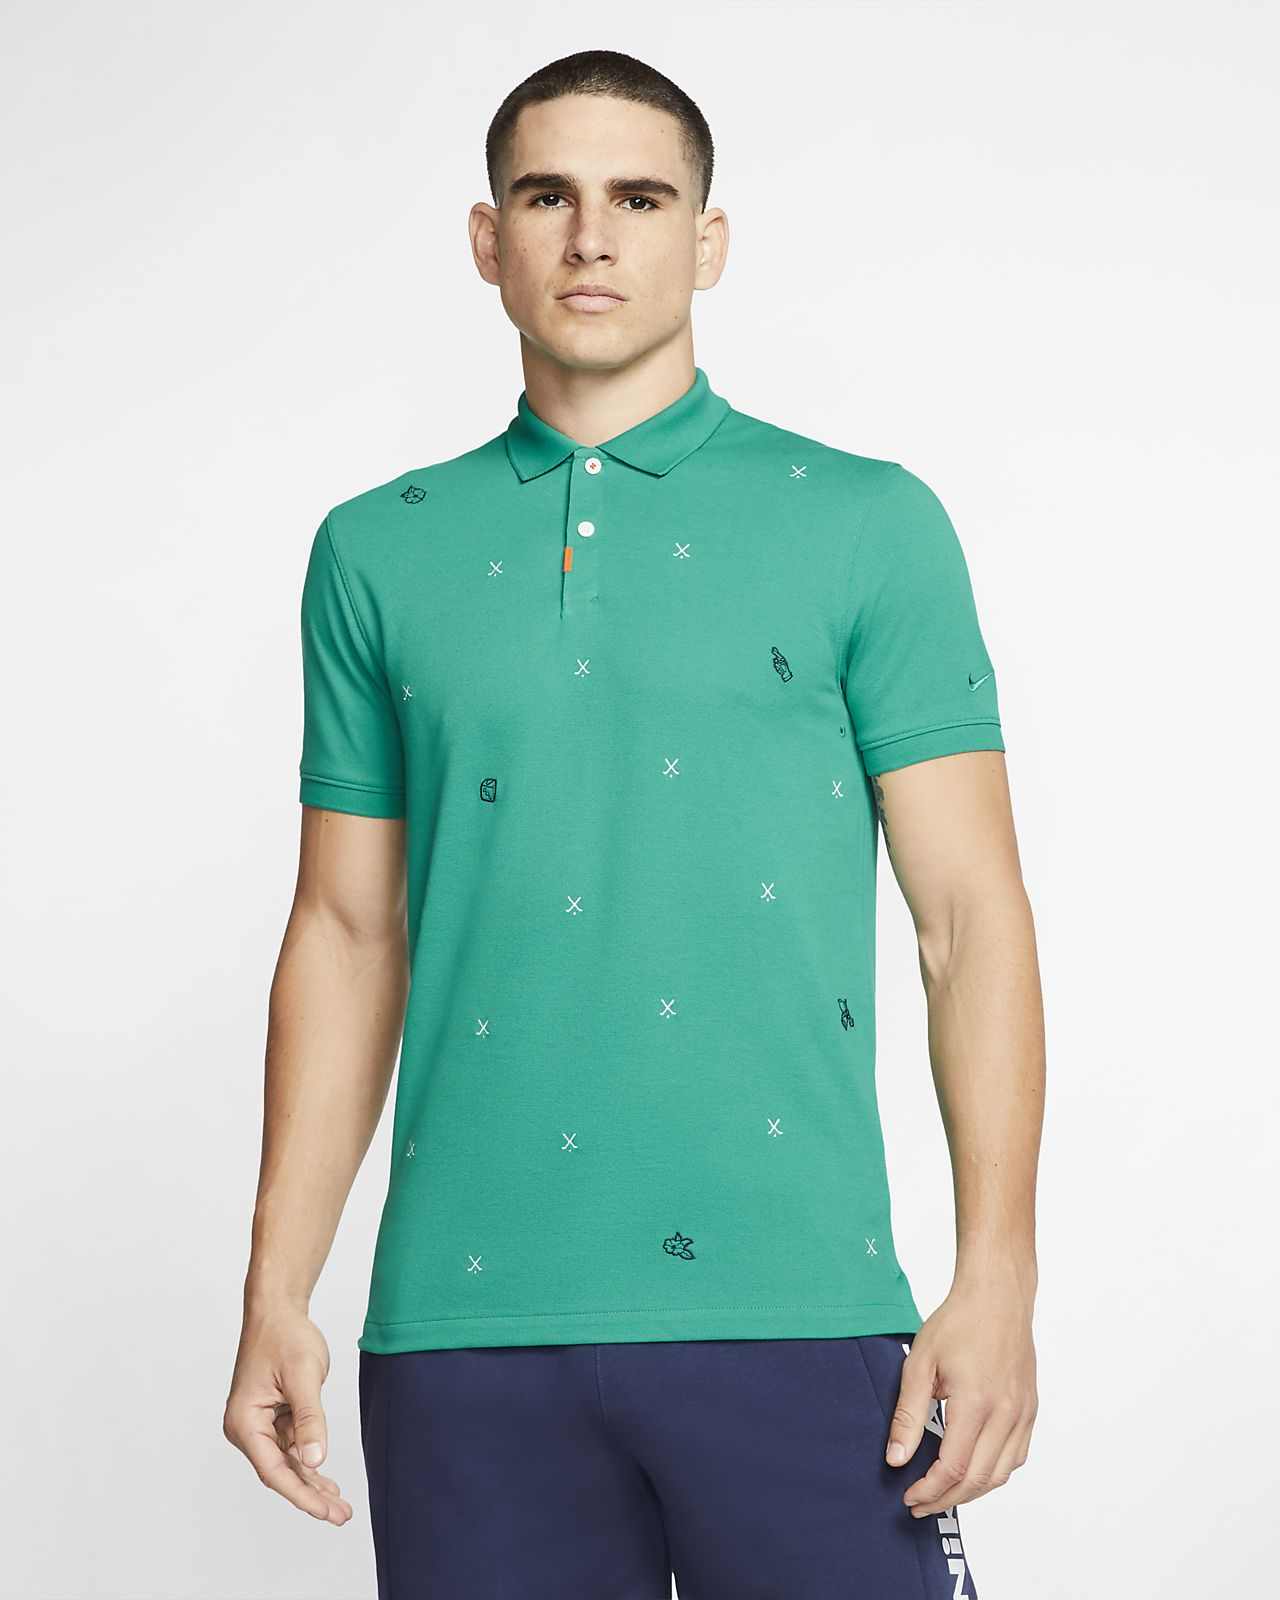 The Nike Polo unisex poloskjorte i smal passform